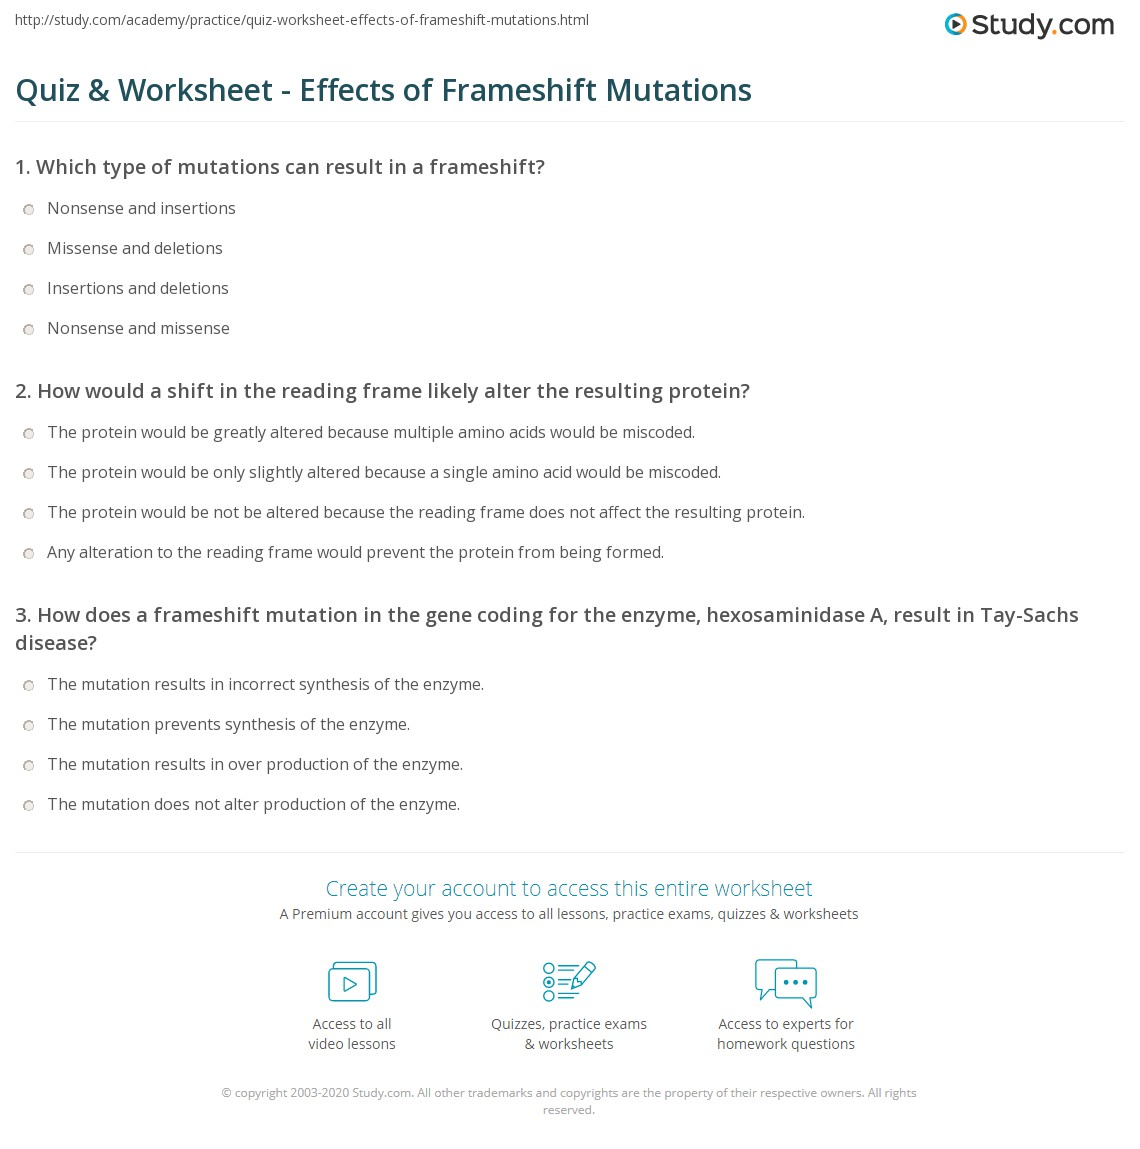 Quiz & Worksheet - Effects of Frameshift Mutations | Study.com